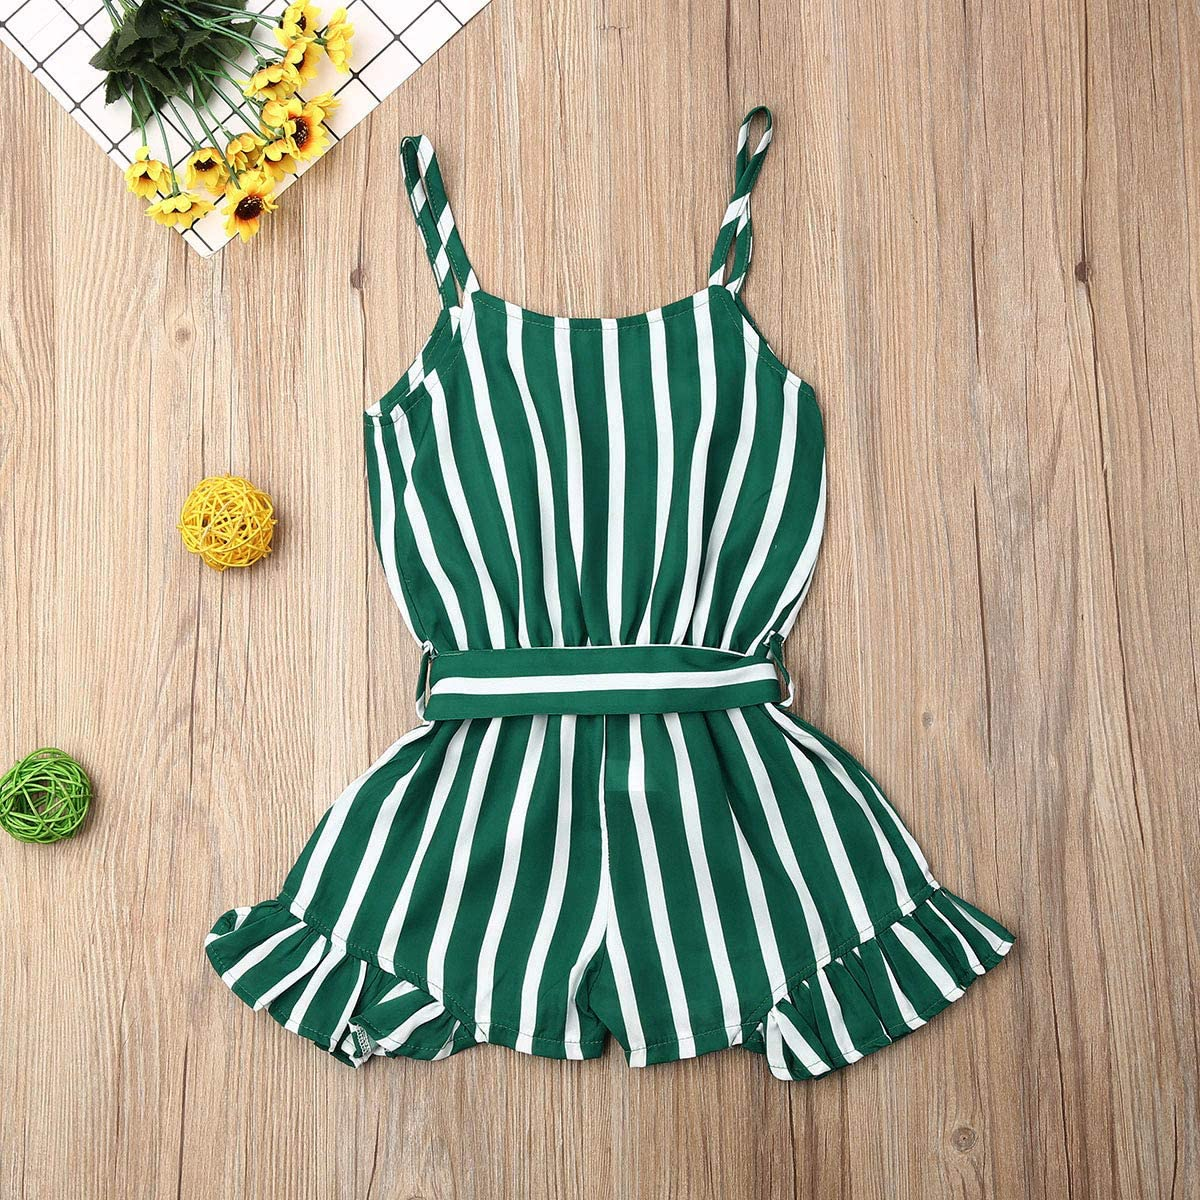 Harvest8 Kids Baby Girls Striped Strap Romper Ruffles Sleeveless Chiffon Jumpsuit Summer Clothes Outfits